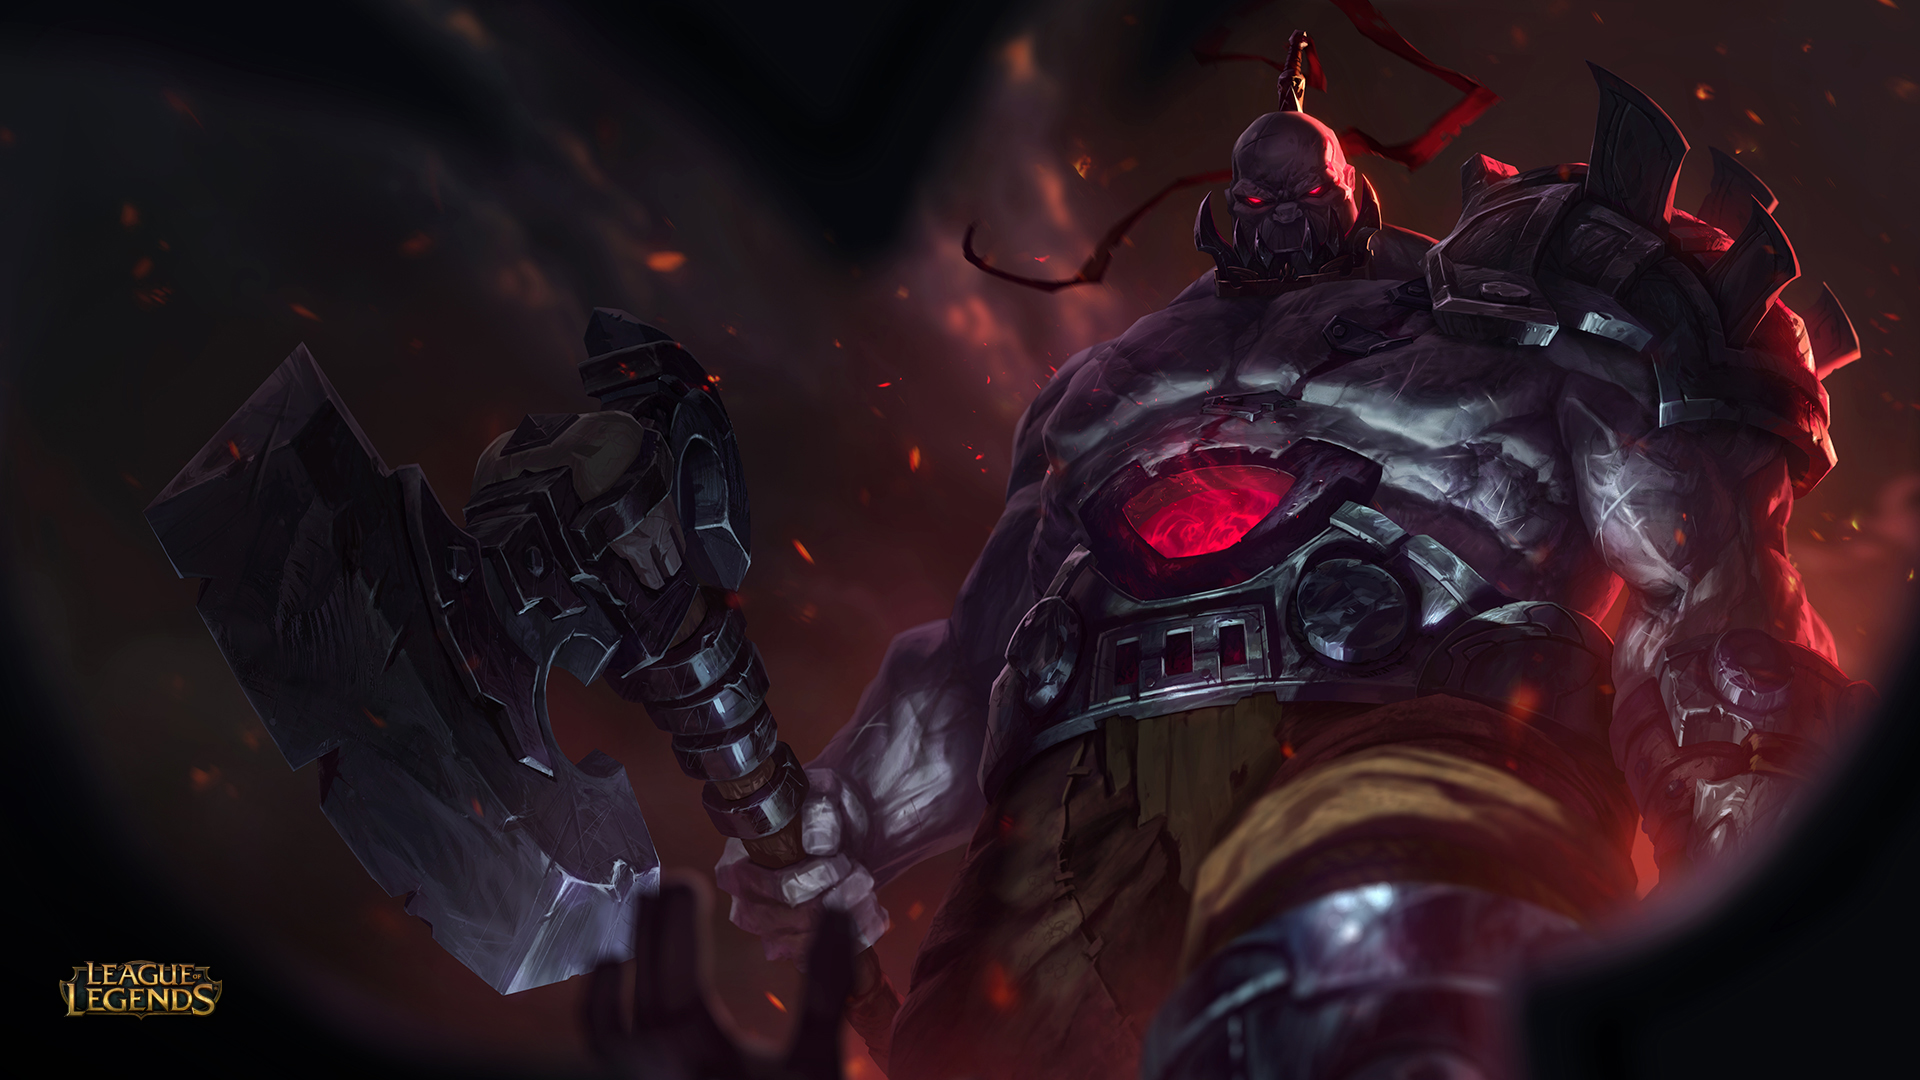 Sion, the Undead Juggernaut, revealed